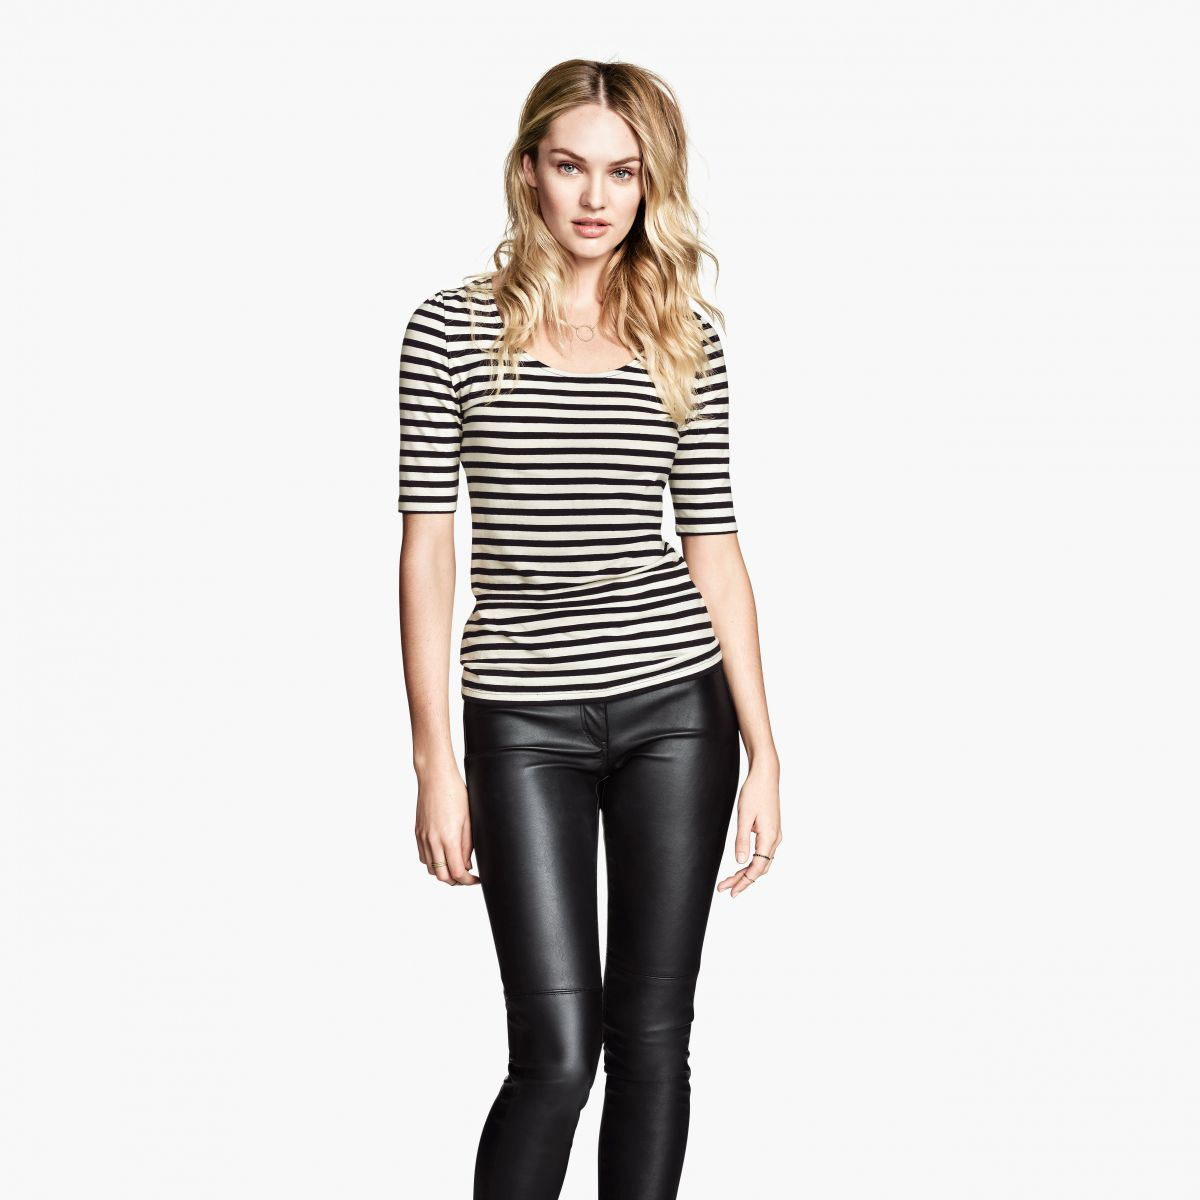 CANDICE SWANEPOEL - H&M 2014 Collection